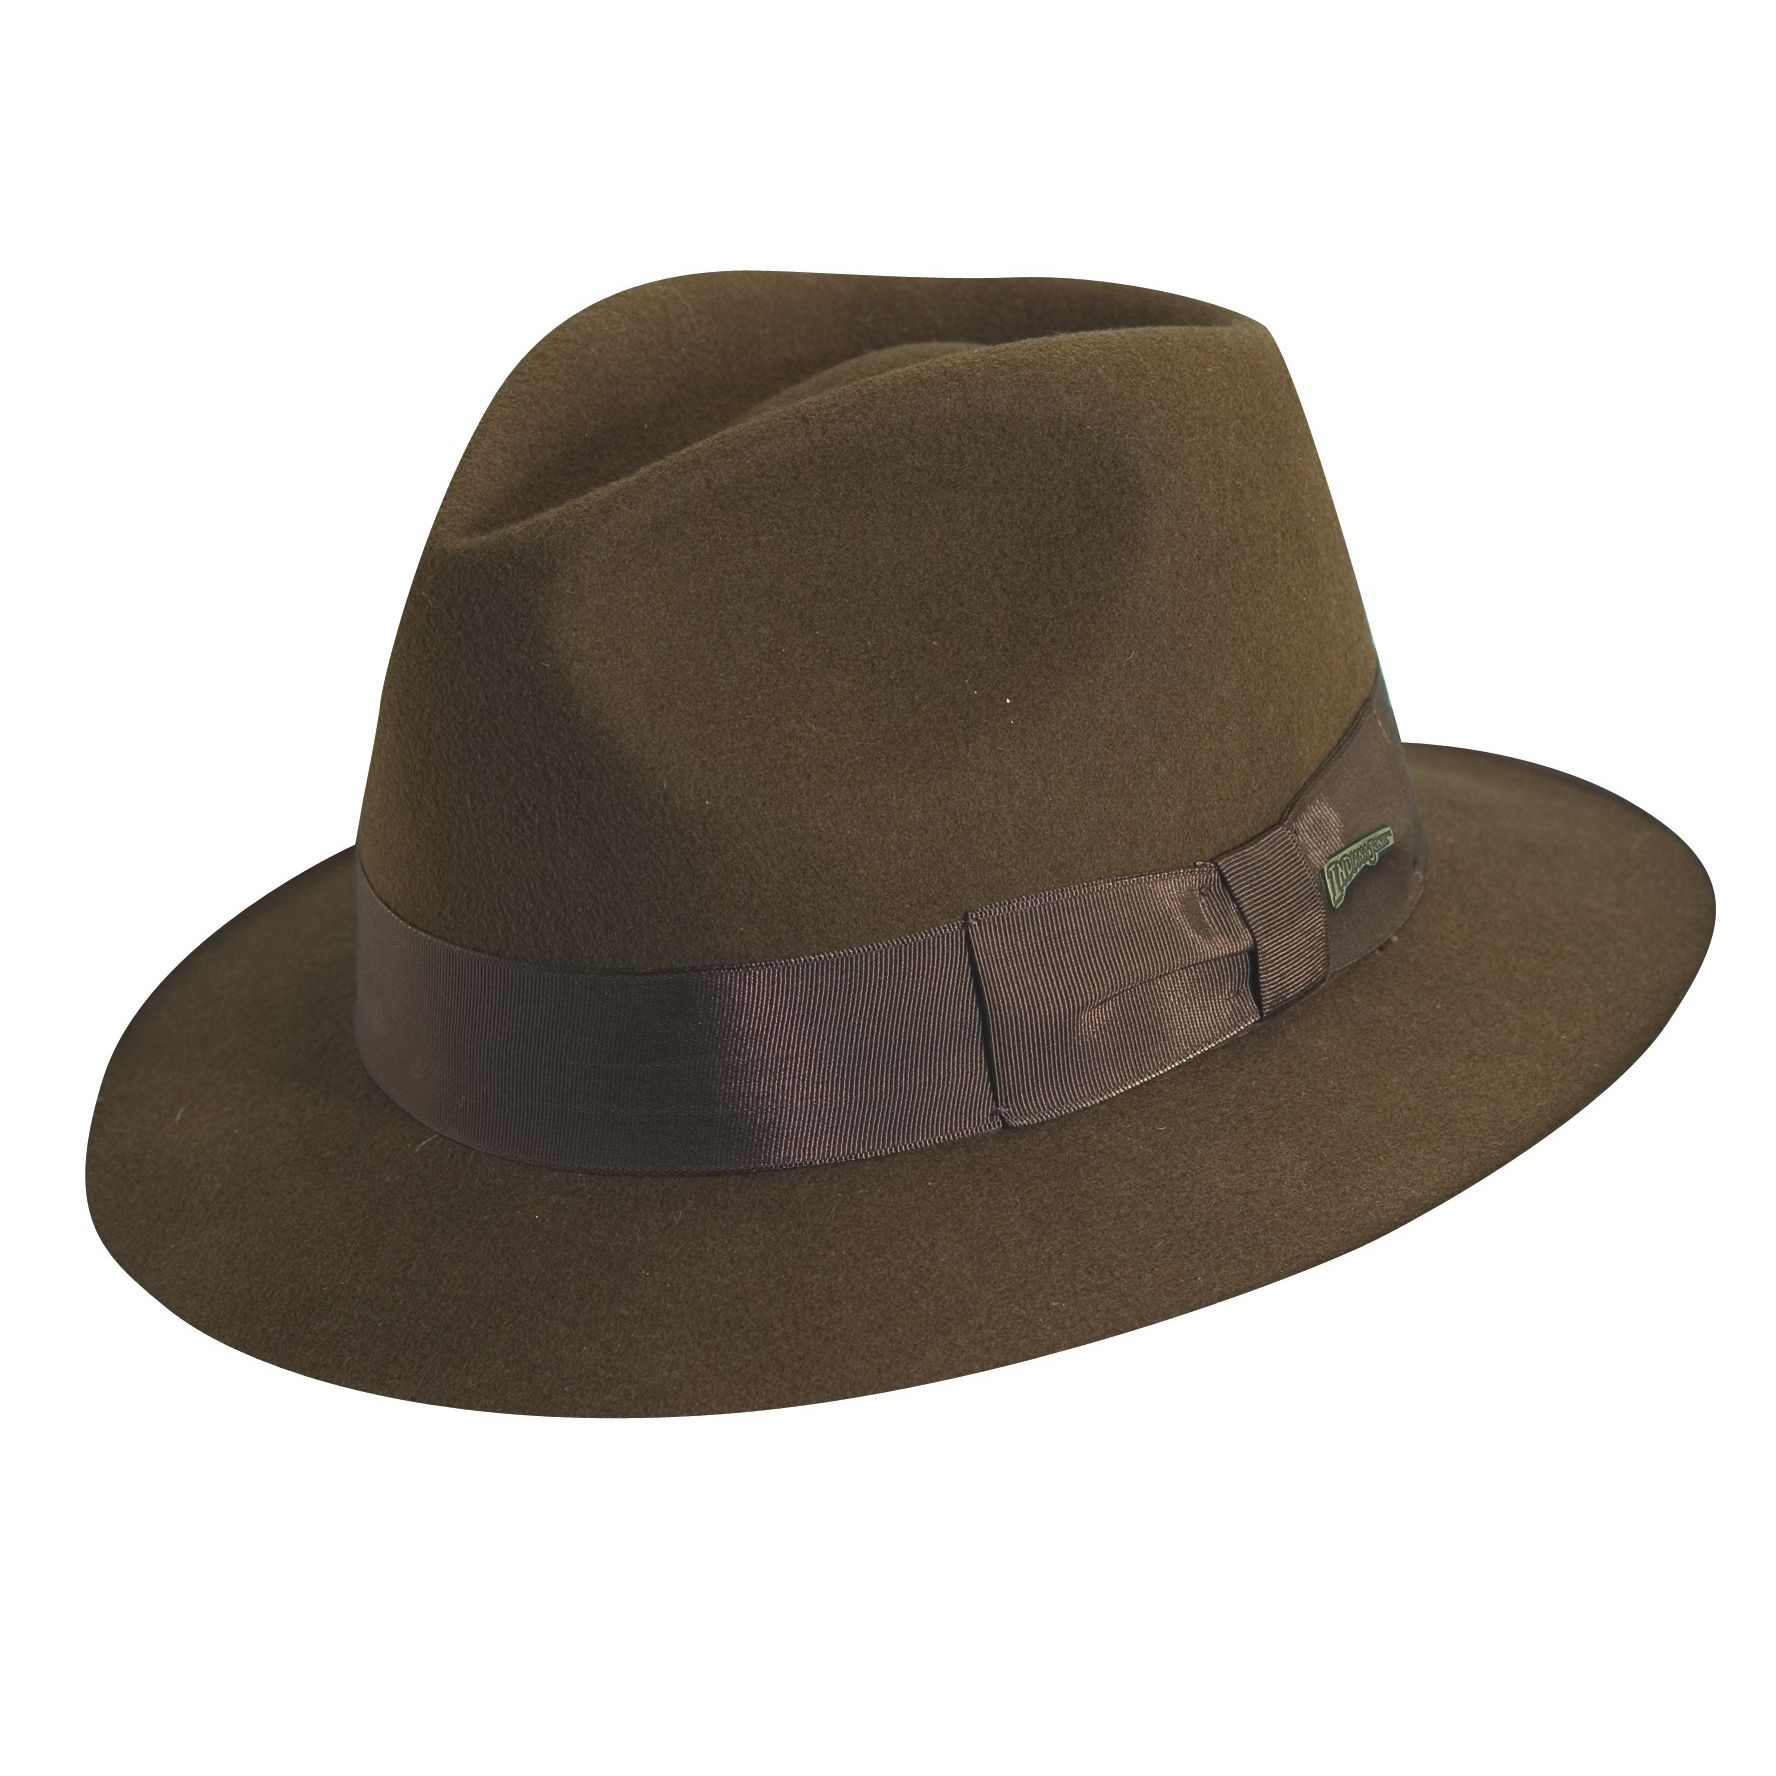 575c180f20b35 Fedora - This is a professional hat